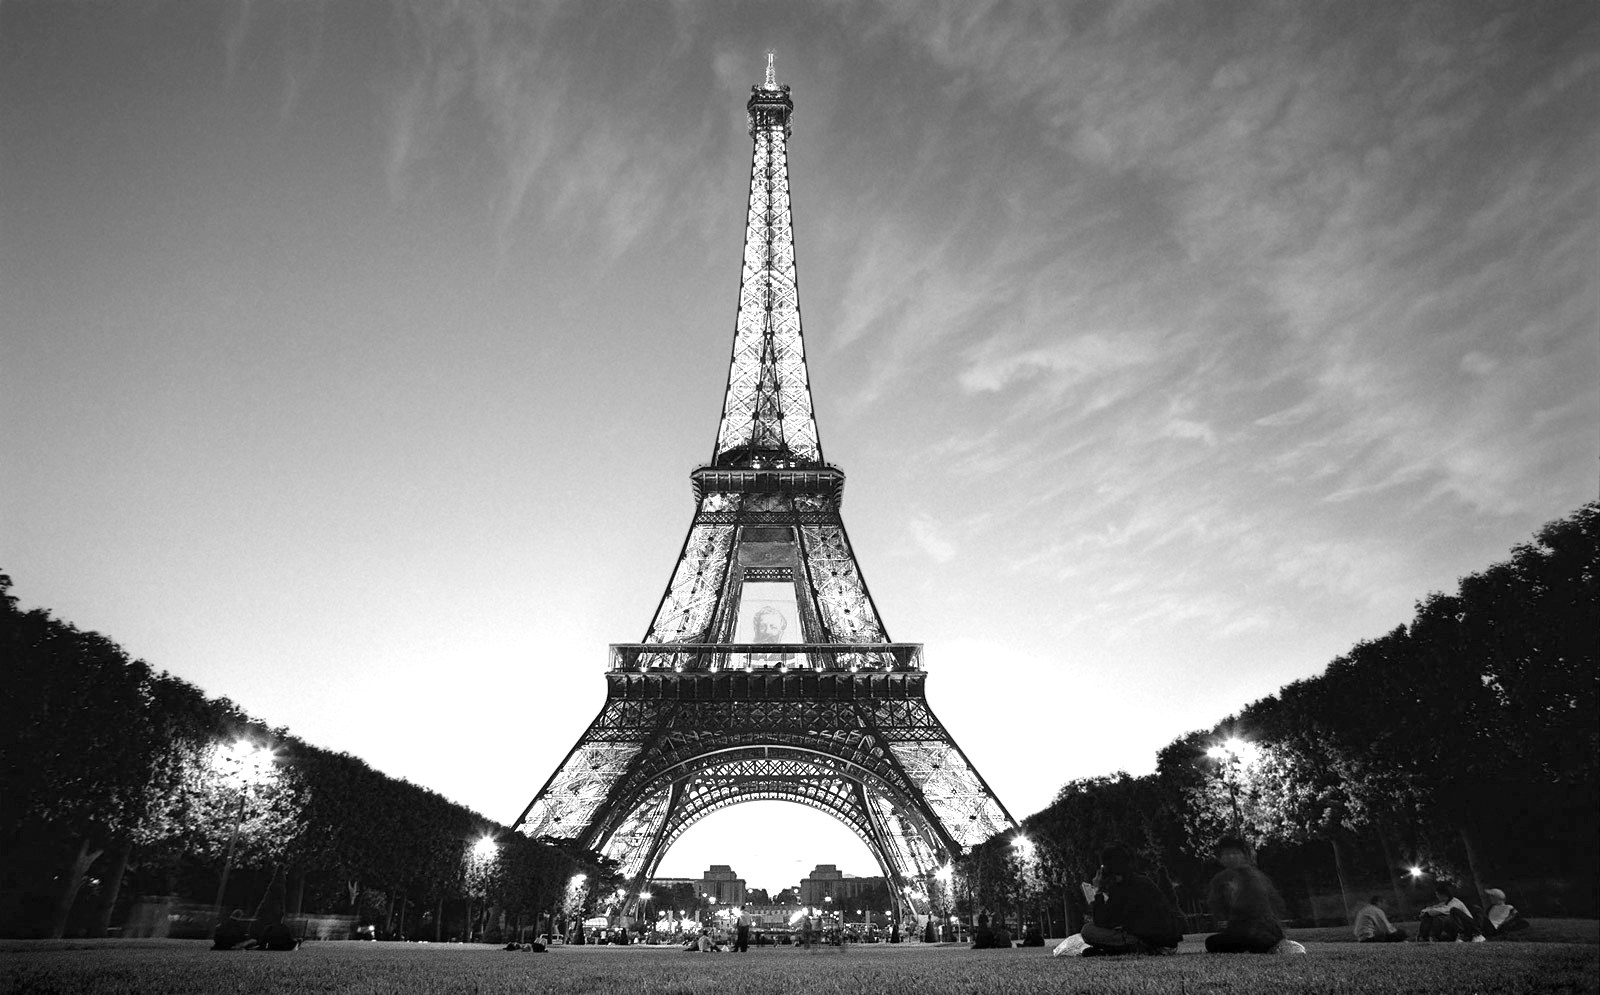 pictures of the eiffel tower in black and white